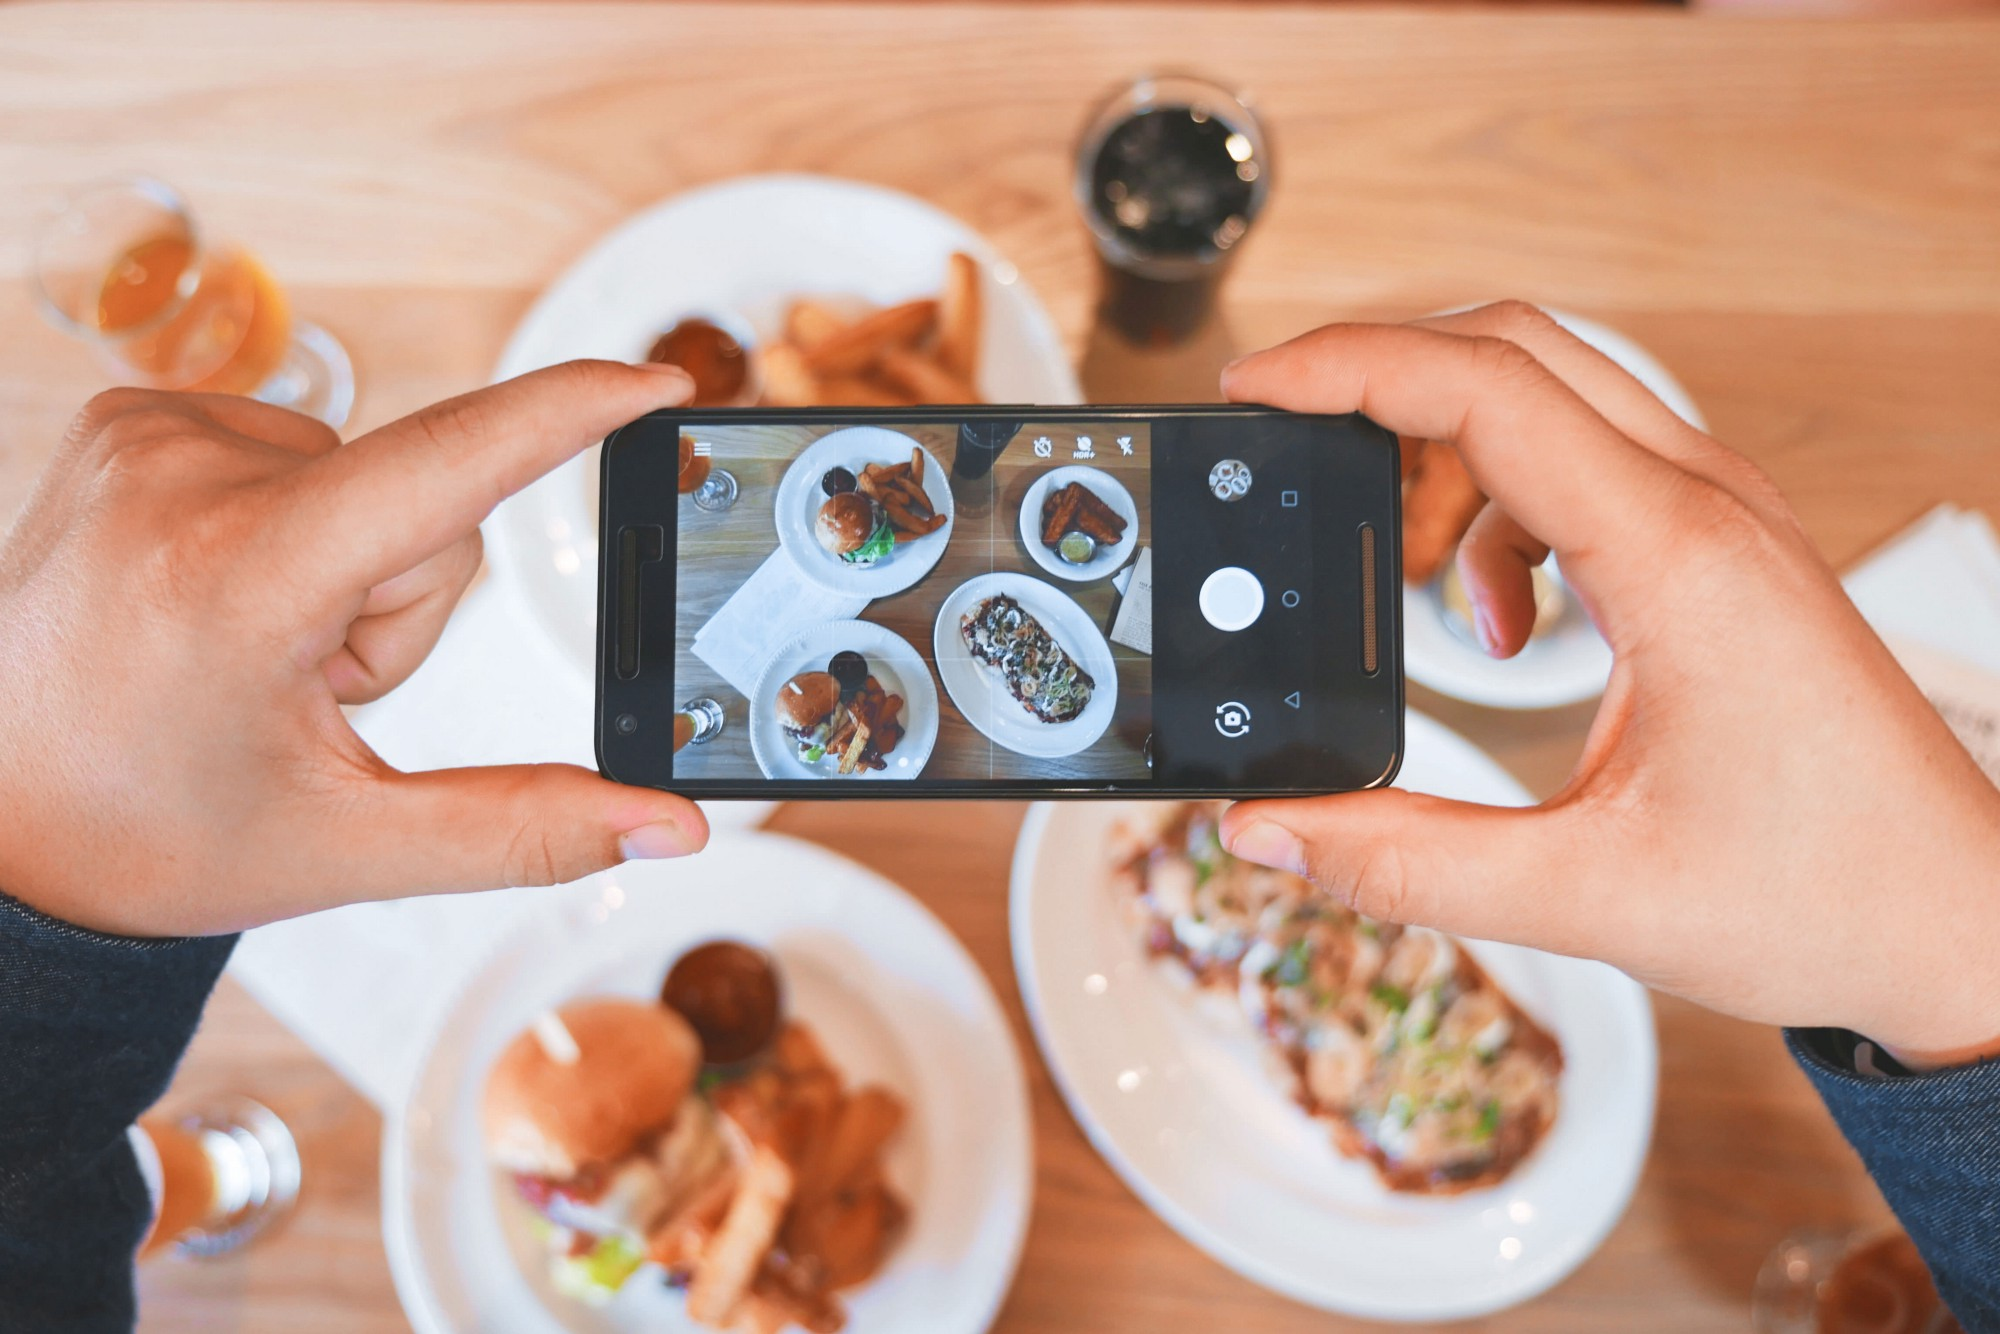 Top 10 Instagram Resources to Bring Your Instagram Game to The Next Level